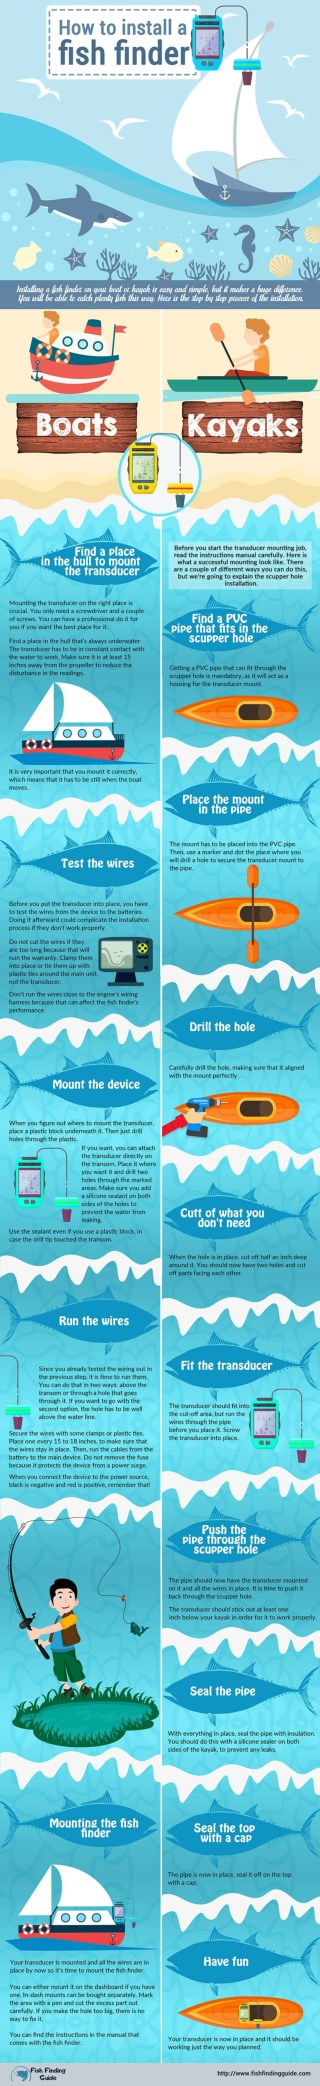 How to Install a Fishfinder?